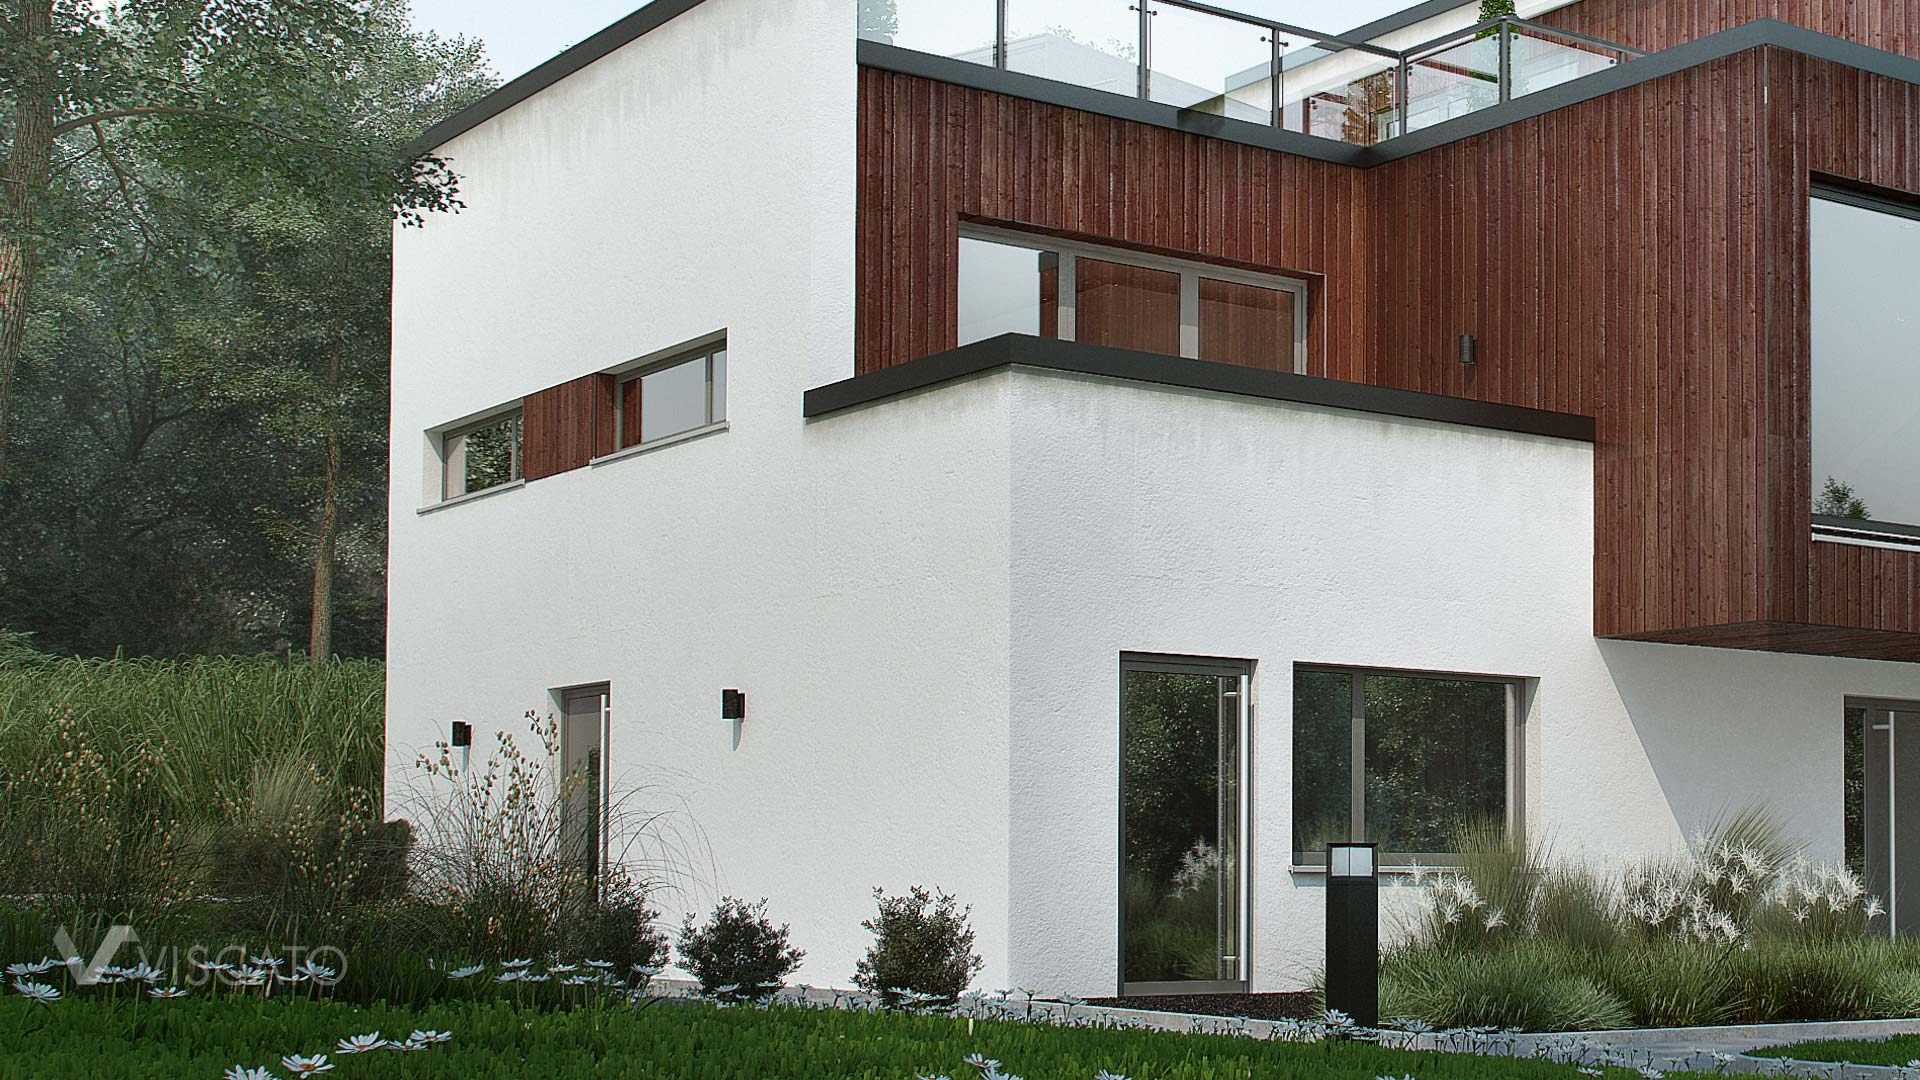 Exterior 3D Visualization of modern house in Norway- details of building with grass, trees and white walls